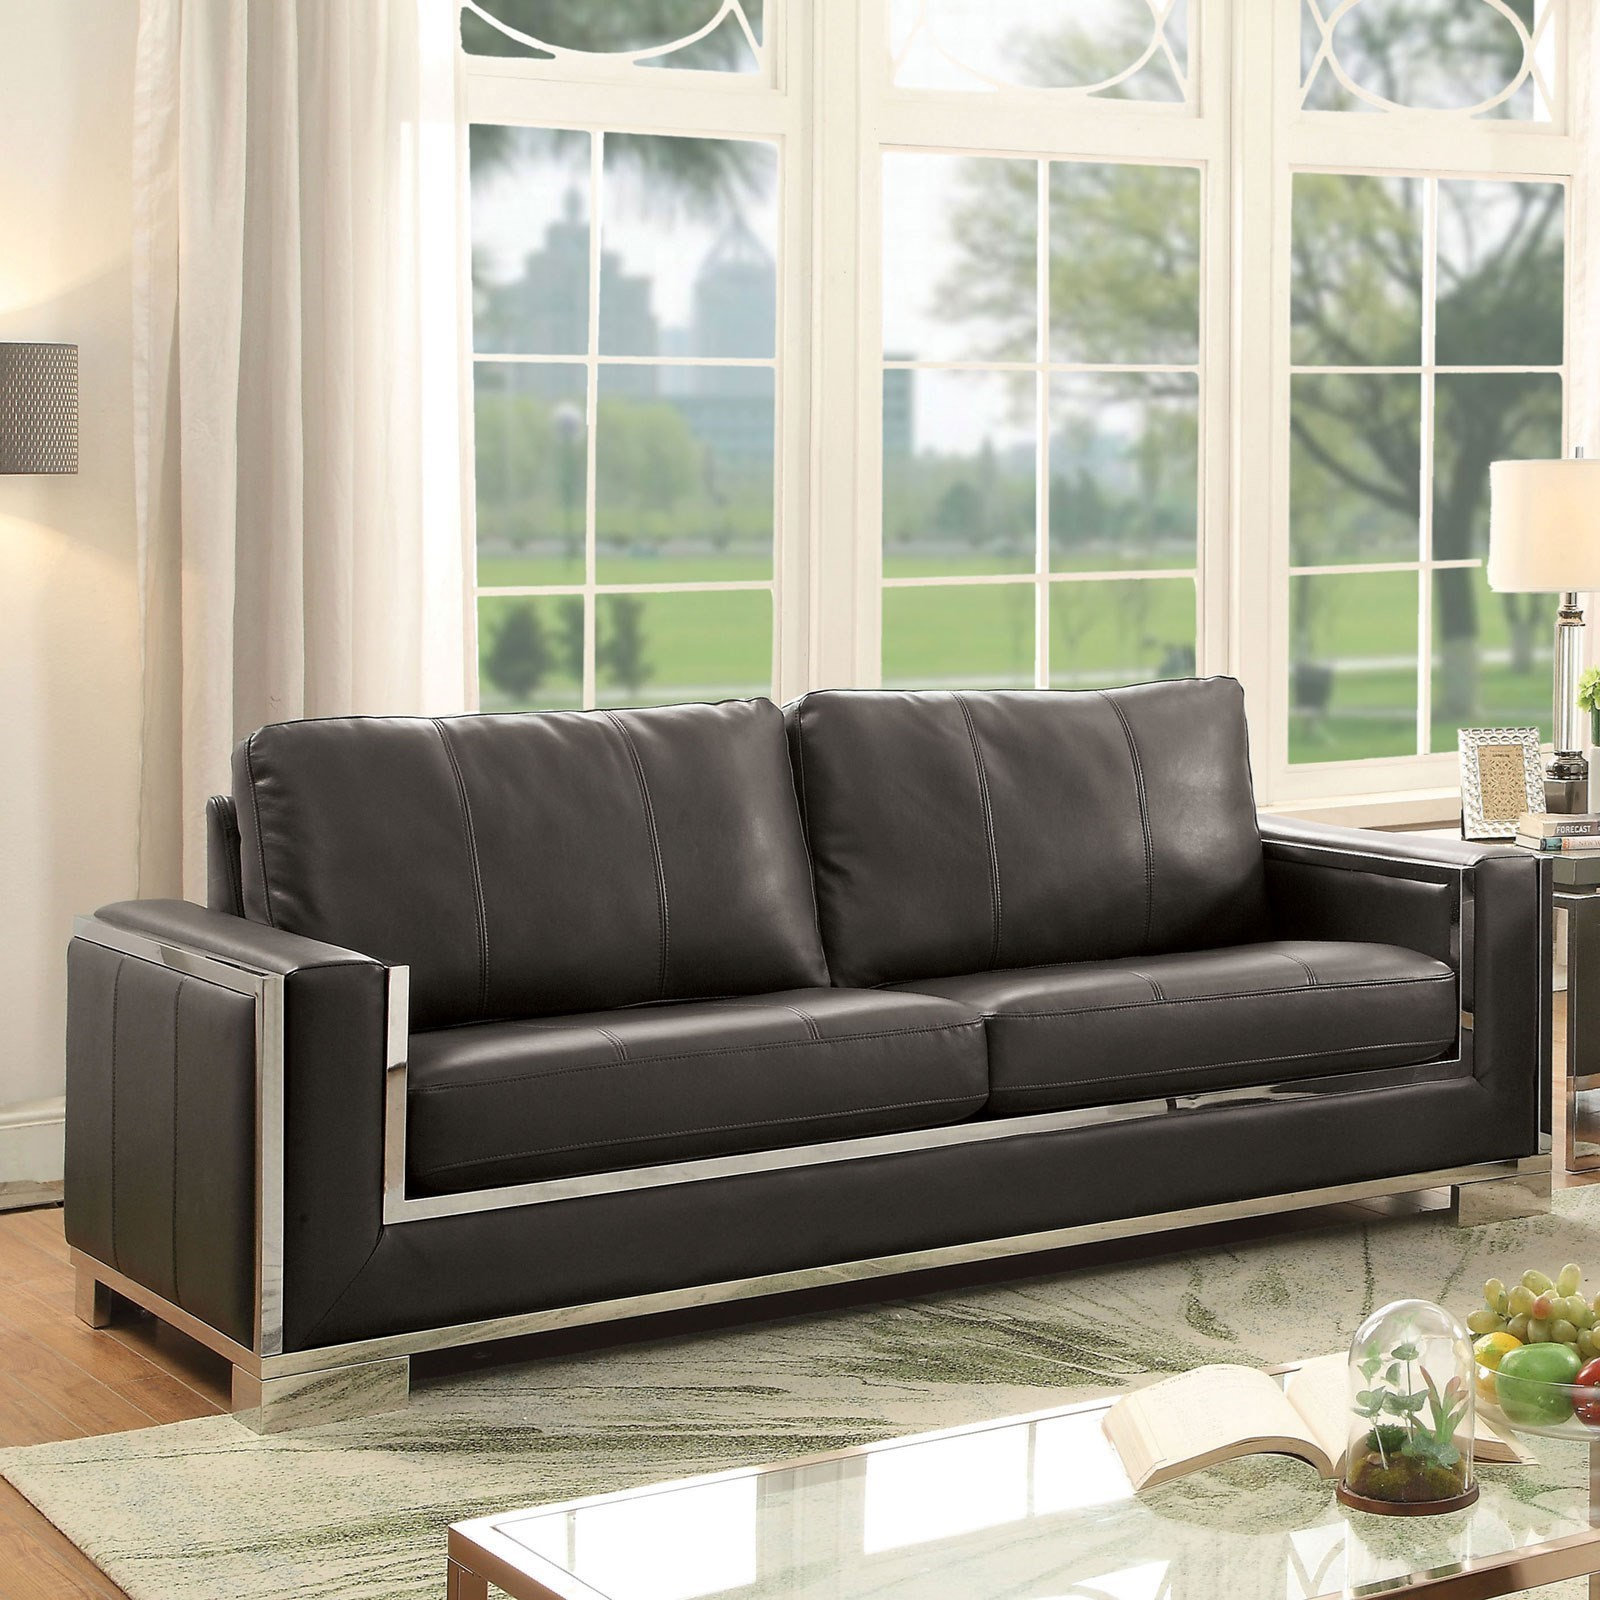 Furniture of America Monika Contemporary Sofa with Stainless Steel ...